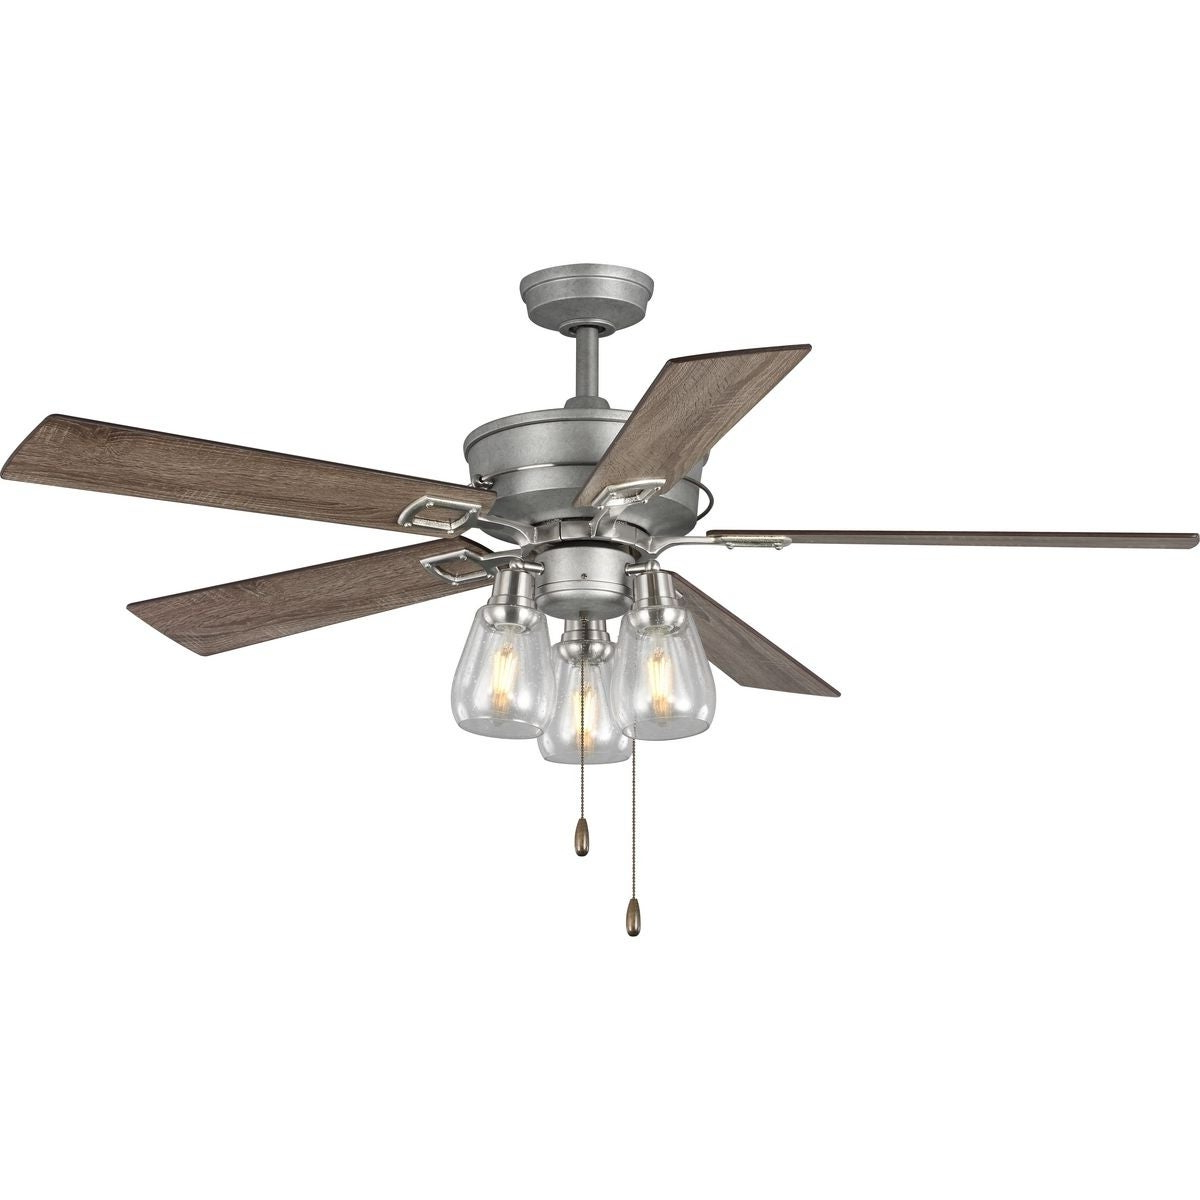 "Clybourn 5 Blade Ceiling Fans Inside Current Teasley 56"" Five Blade Ceiling Fan With Glass Shades (View 7 of 20)"